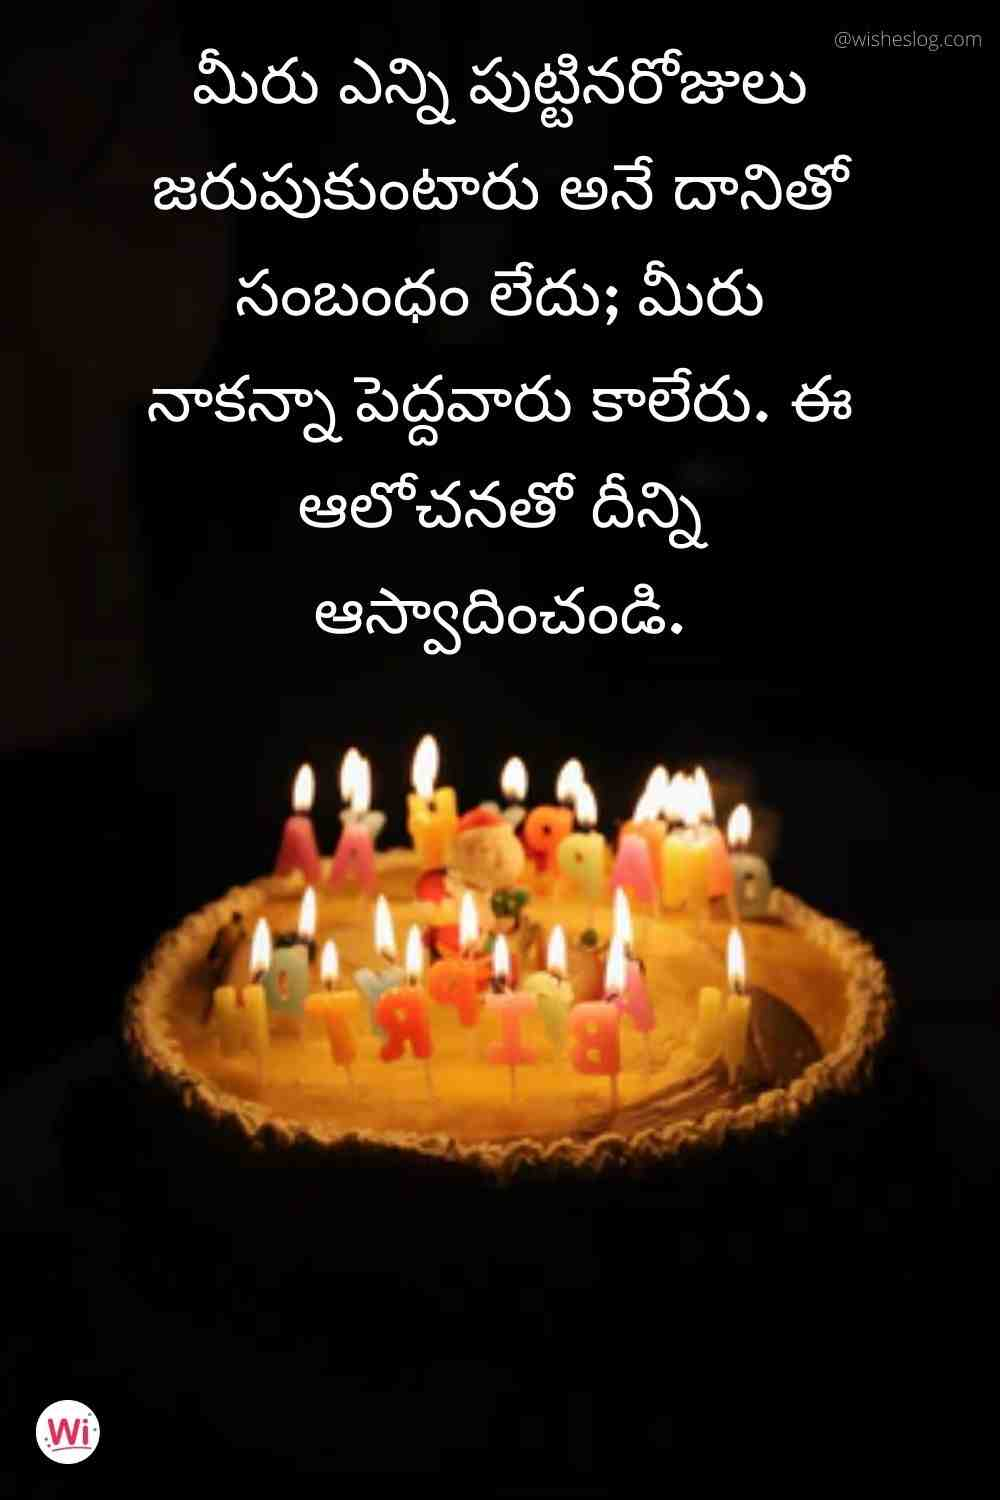 birthday wishes quotes in telugu for little brother